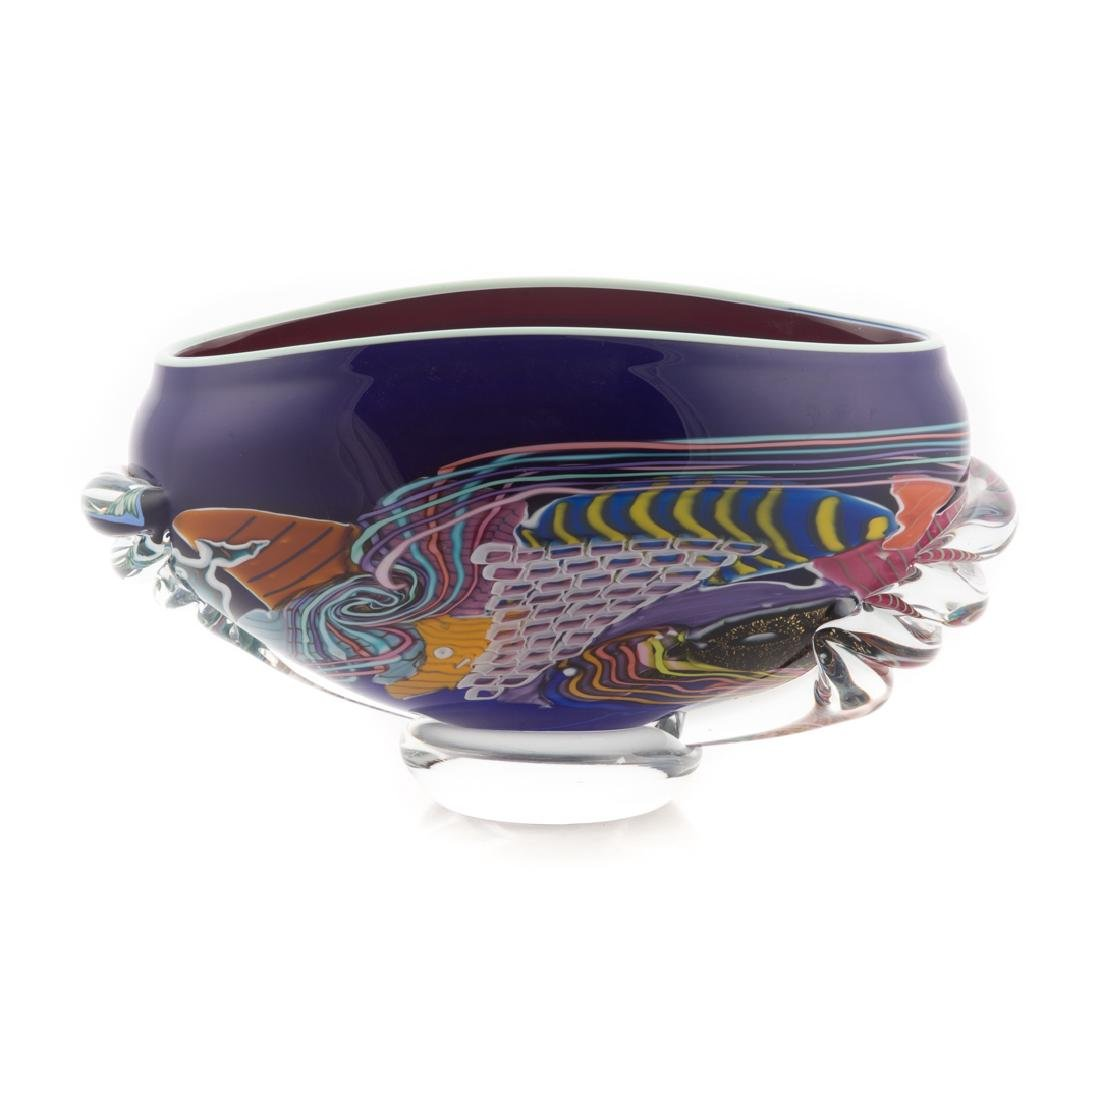 American art glass centerbowl - 2